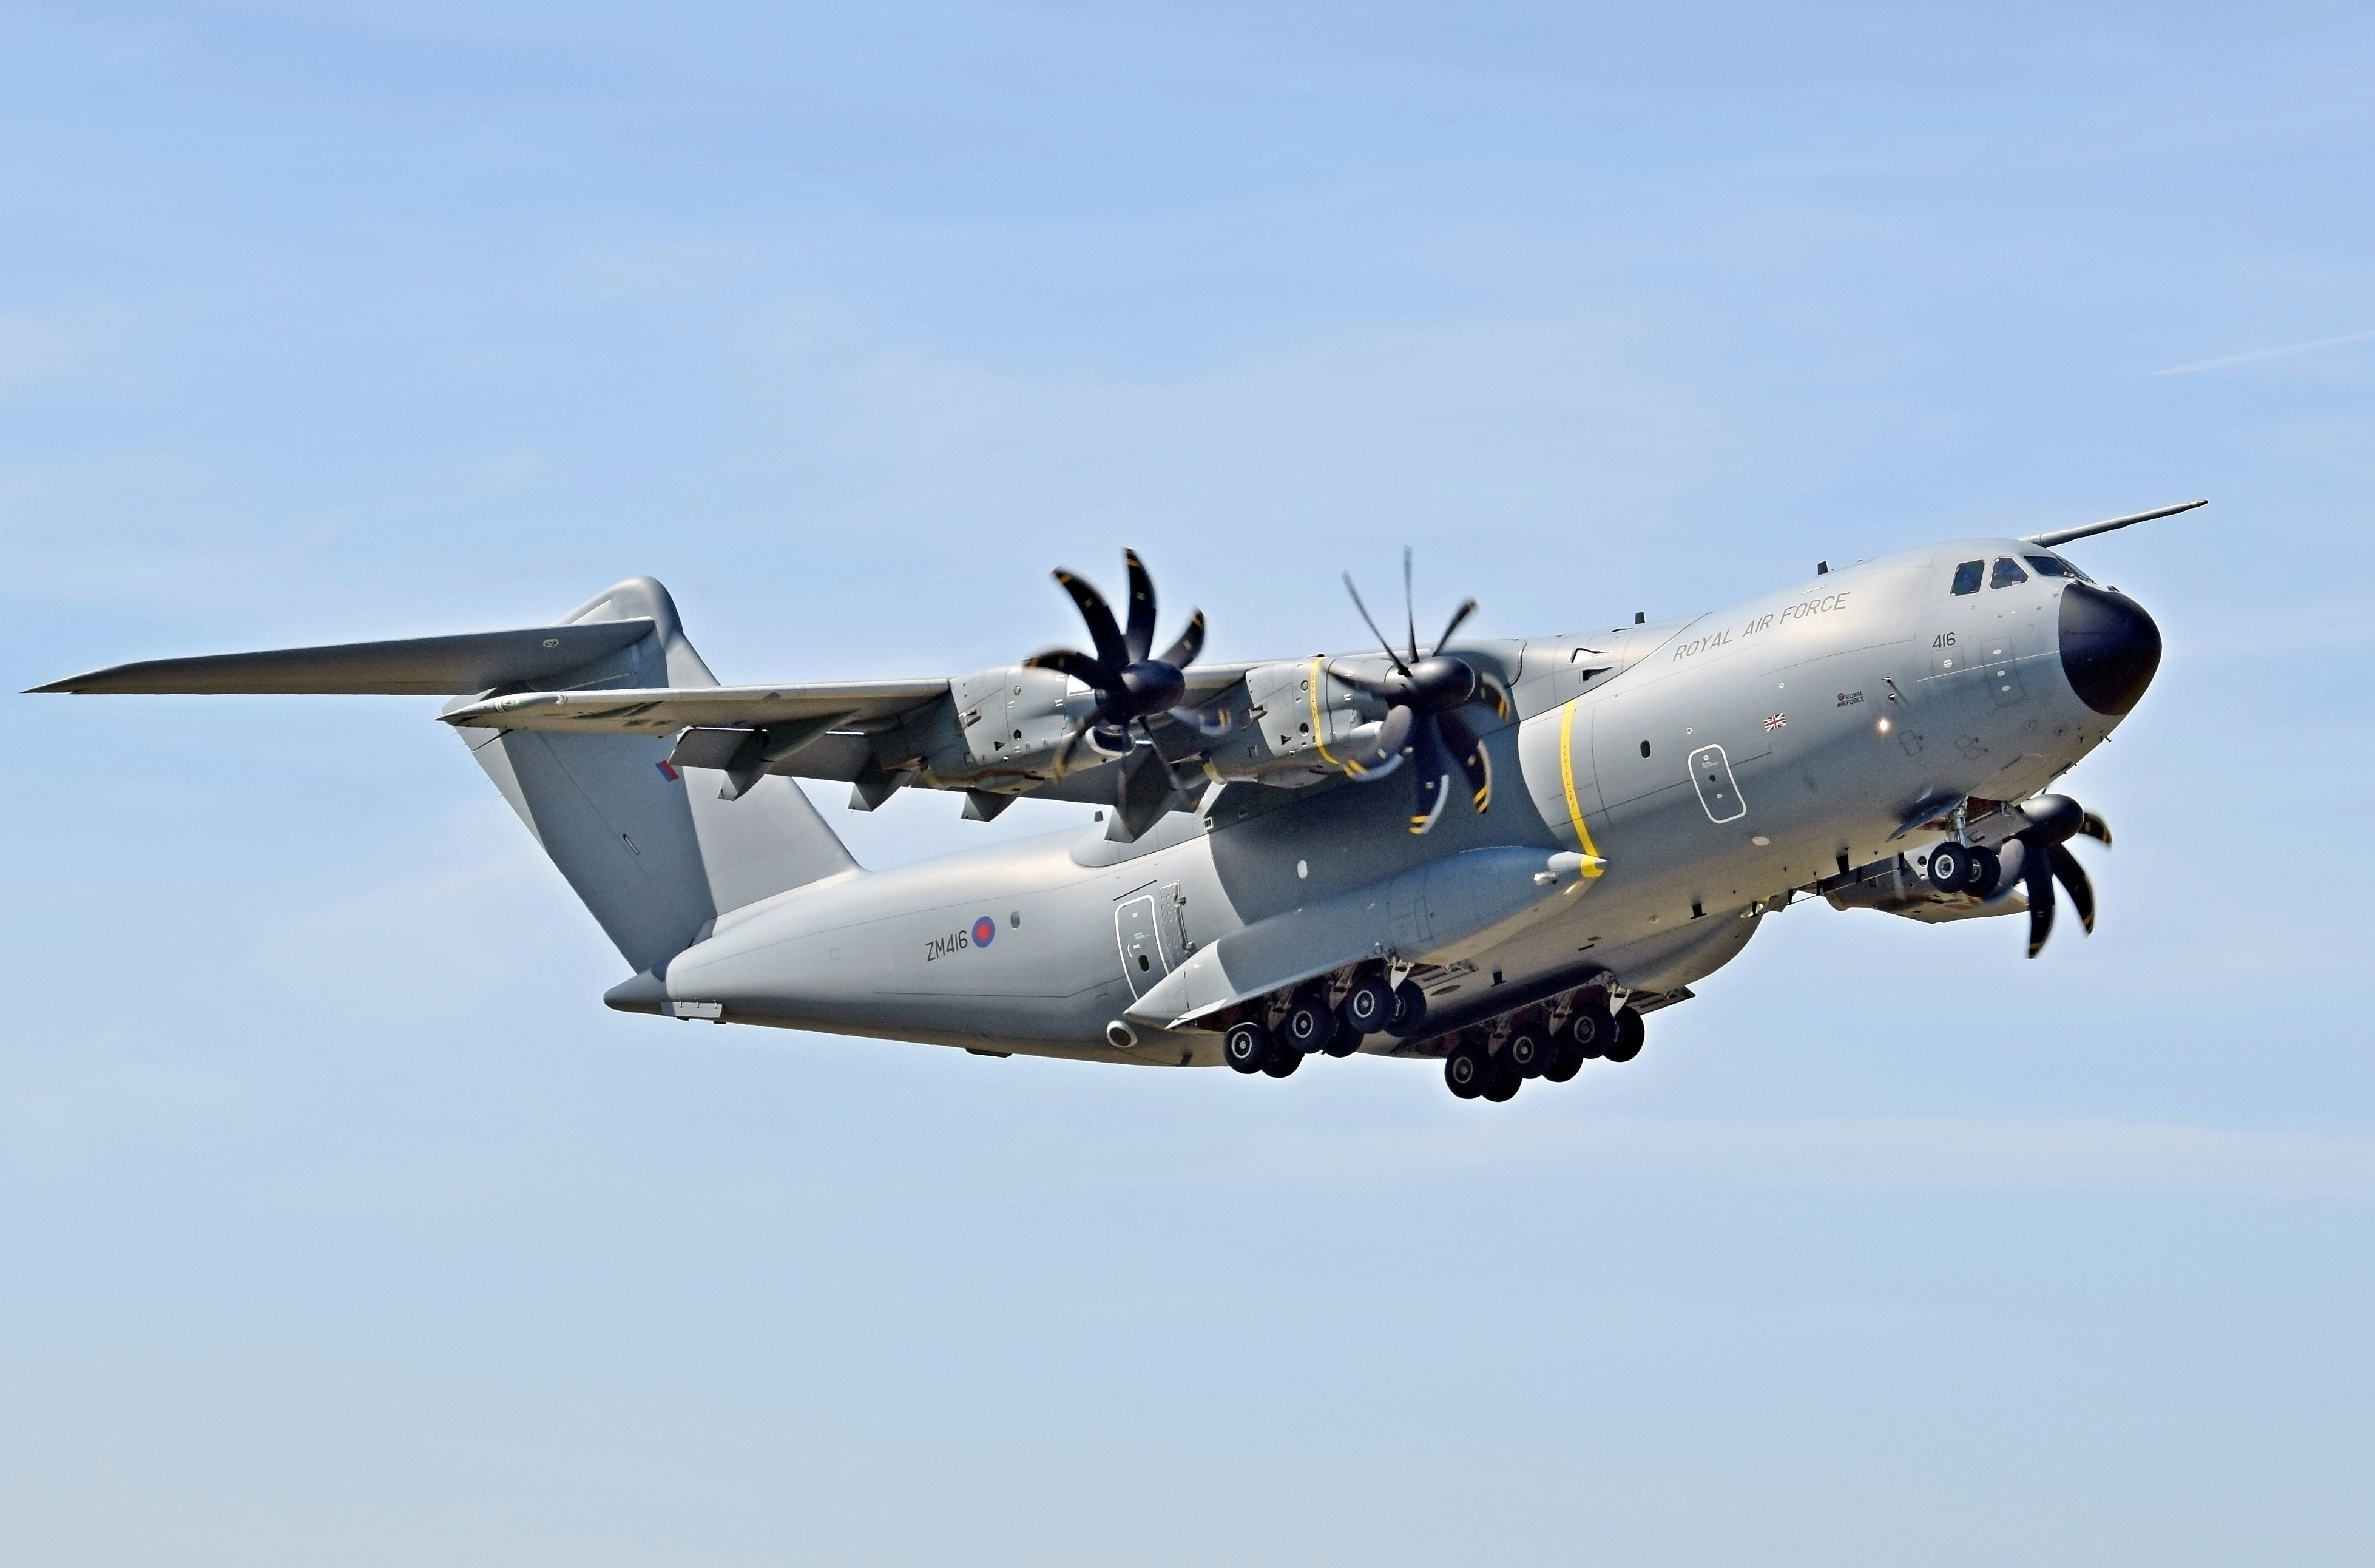 Military transport aircraft - Wikipedia